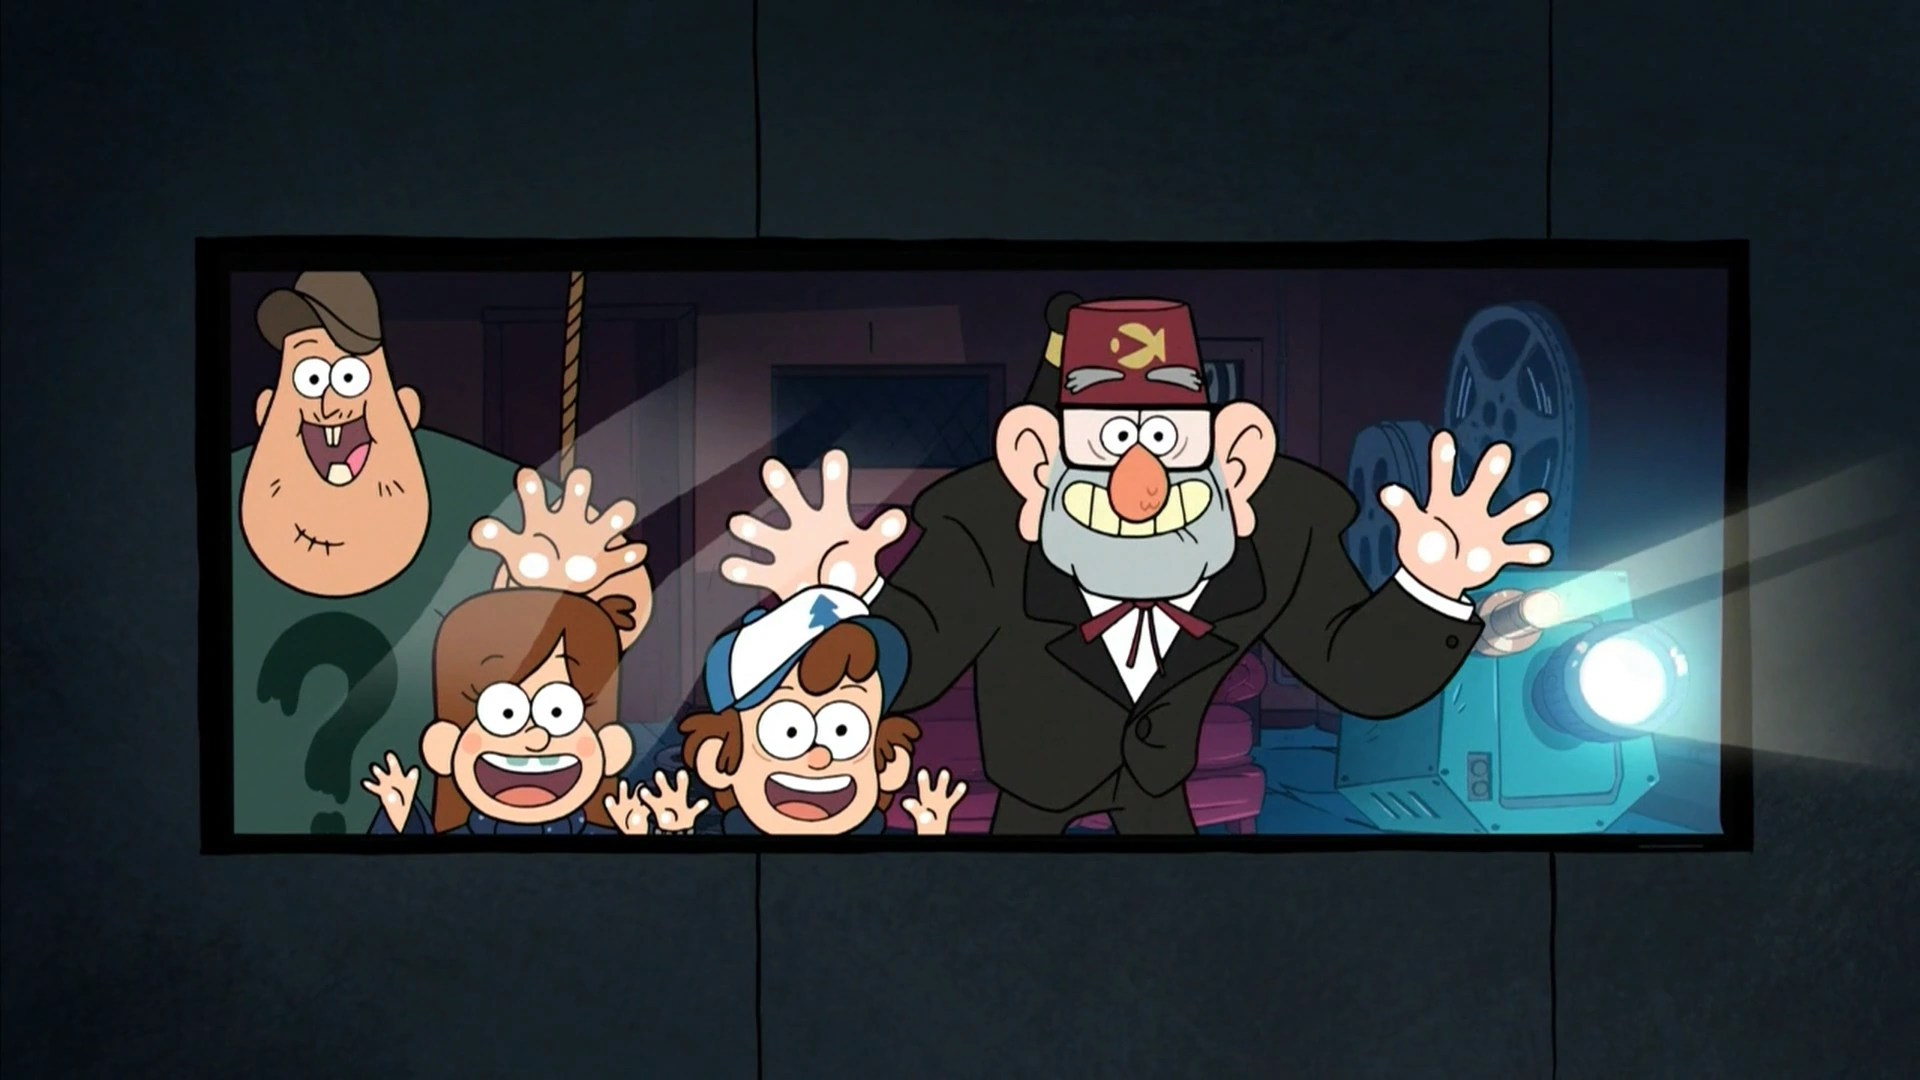 Gravity Falls Dipper And Wendy Wallpaper Mabel S Scrapbook Heist Movie Gravity Falls Wiki